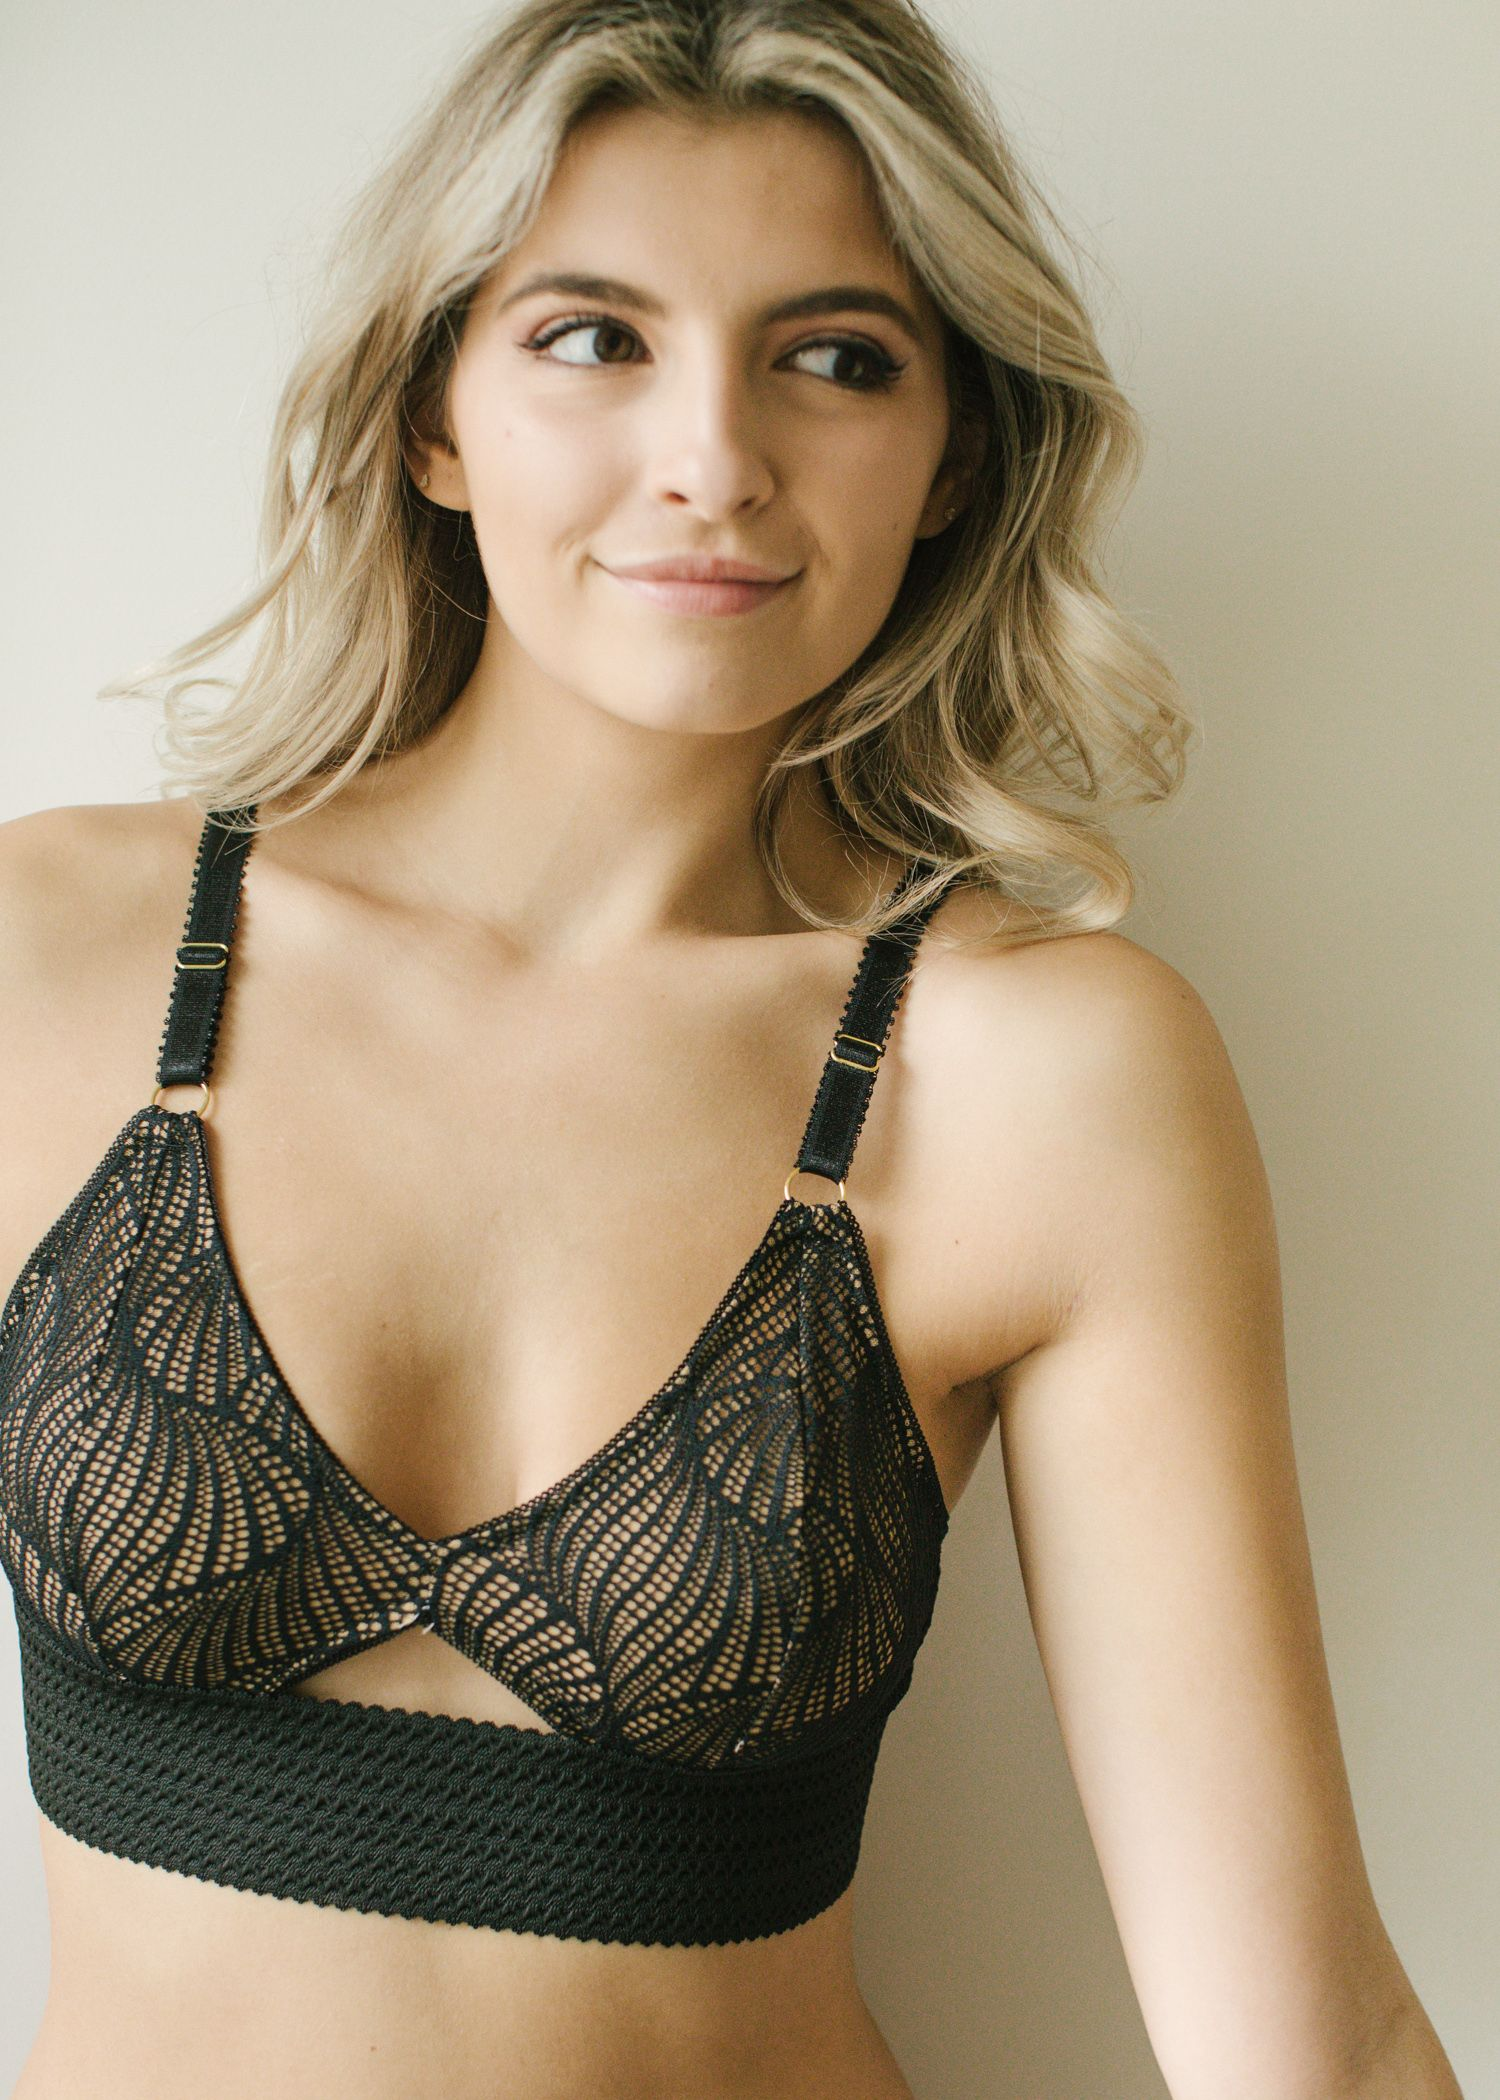 47a2f09676 Spice up your me-made lingerie collection and let your creativity shine  with Madalynne s Barrett bralette sewing kit. Receive all fabric + supplies  for the ...